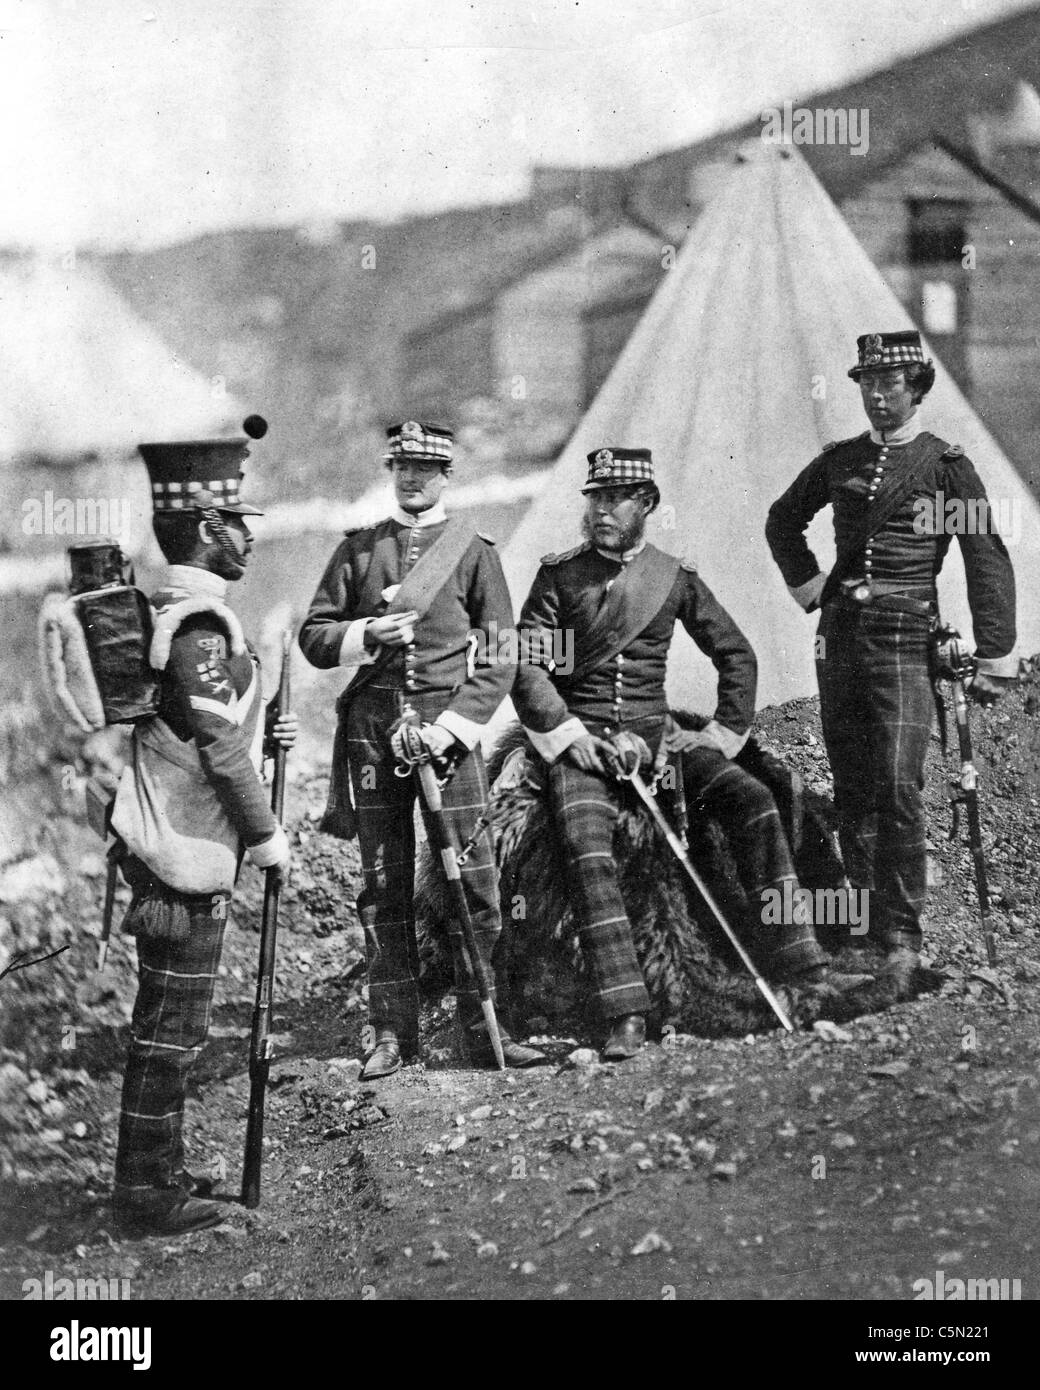 CRIMEAN WAR (1853-1856) Soldiers from British 71st Highlander Regiment with their Colour Sergent in 1854. Photo - Stock Image